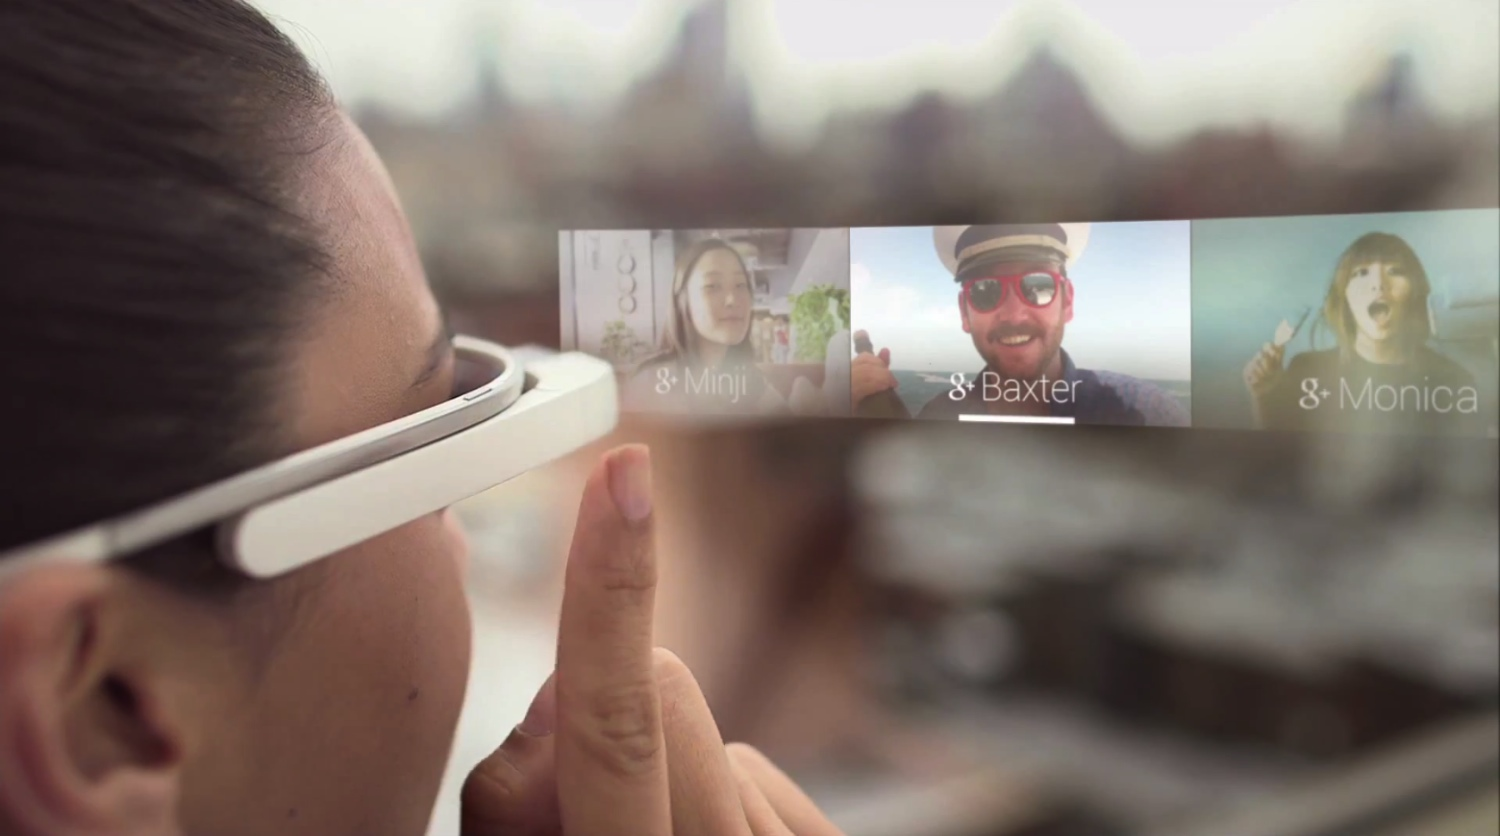 Google Glass: The Next Big Thing